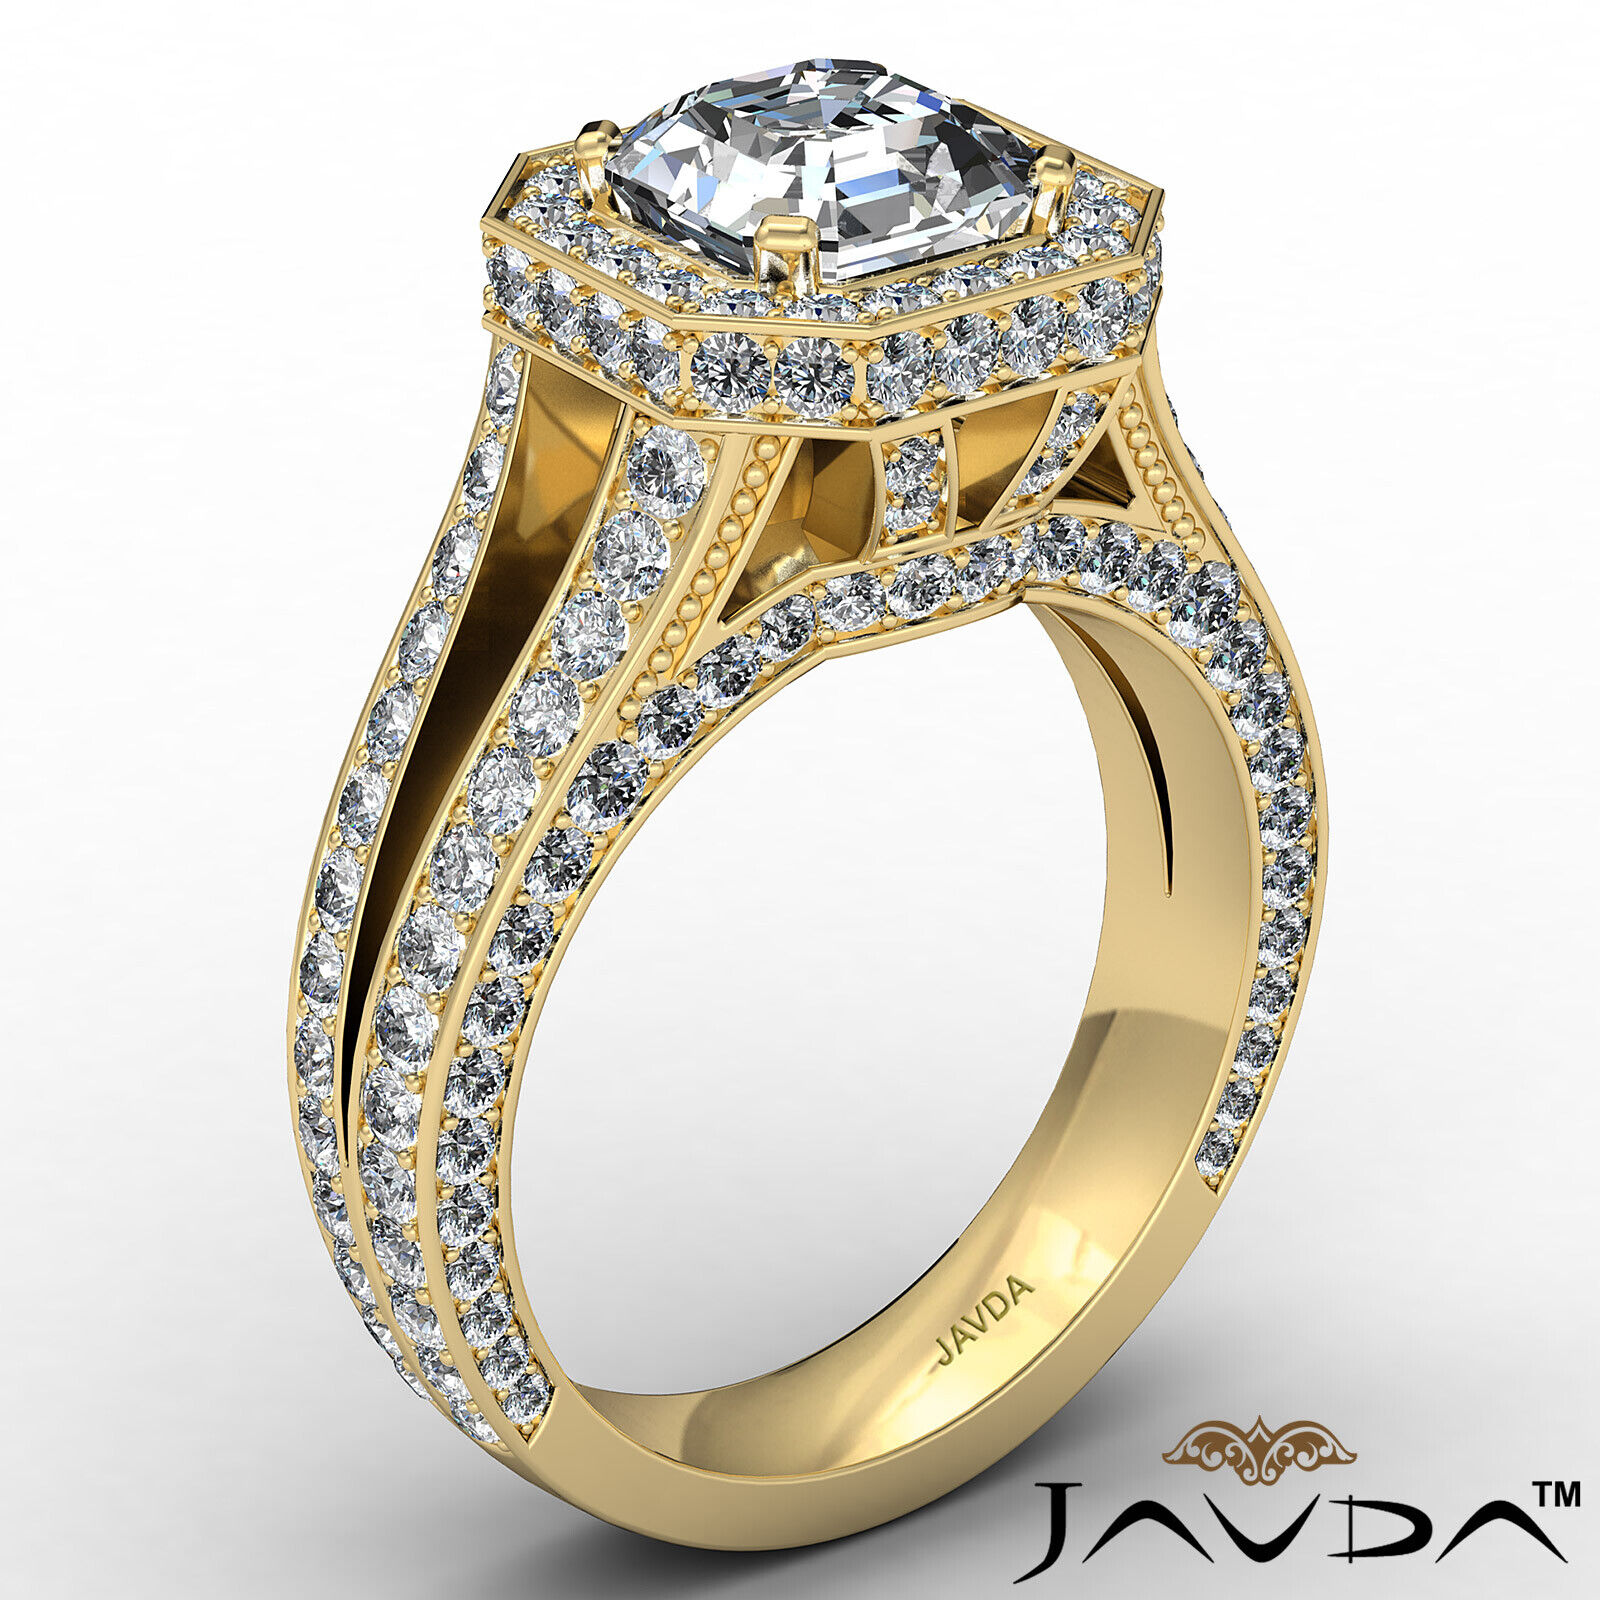 Halo Asscher Diamond Engagement Ring GIA Certified G Color & SI2 clarity 2.4 ctw 4